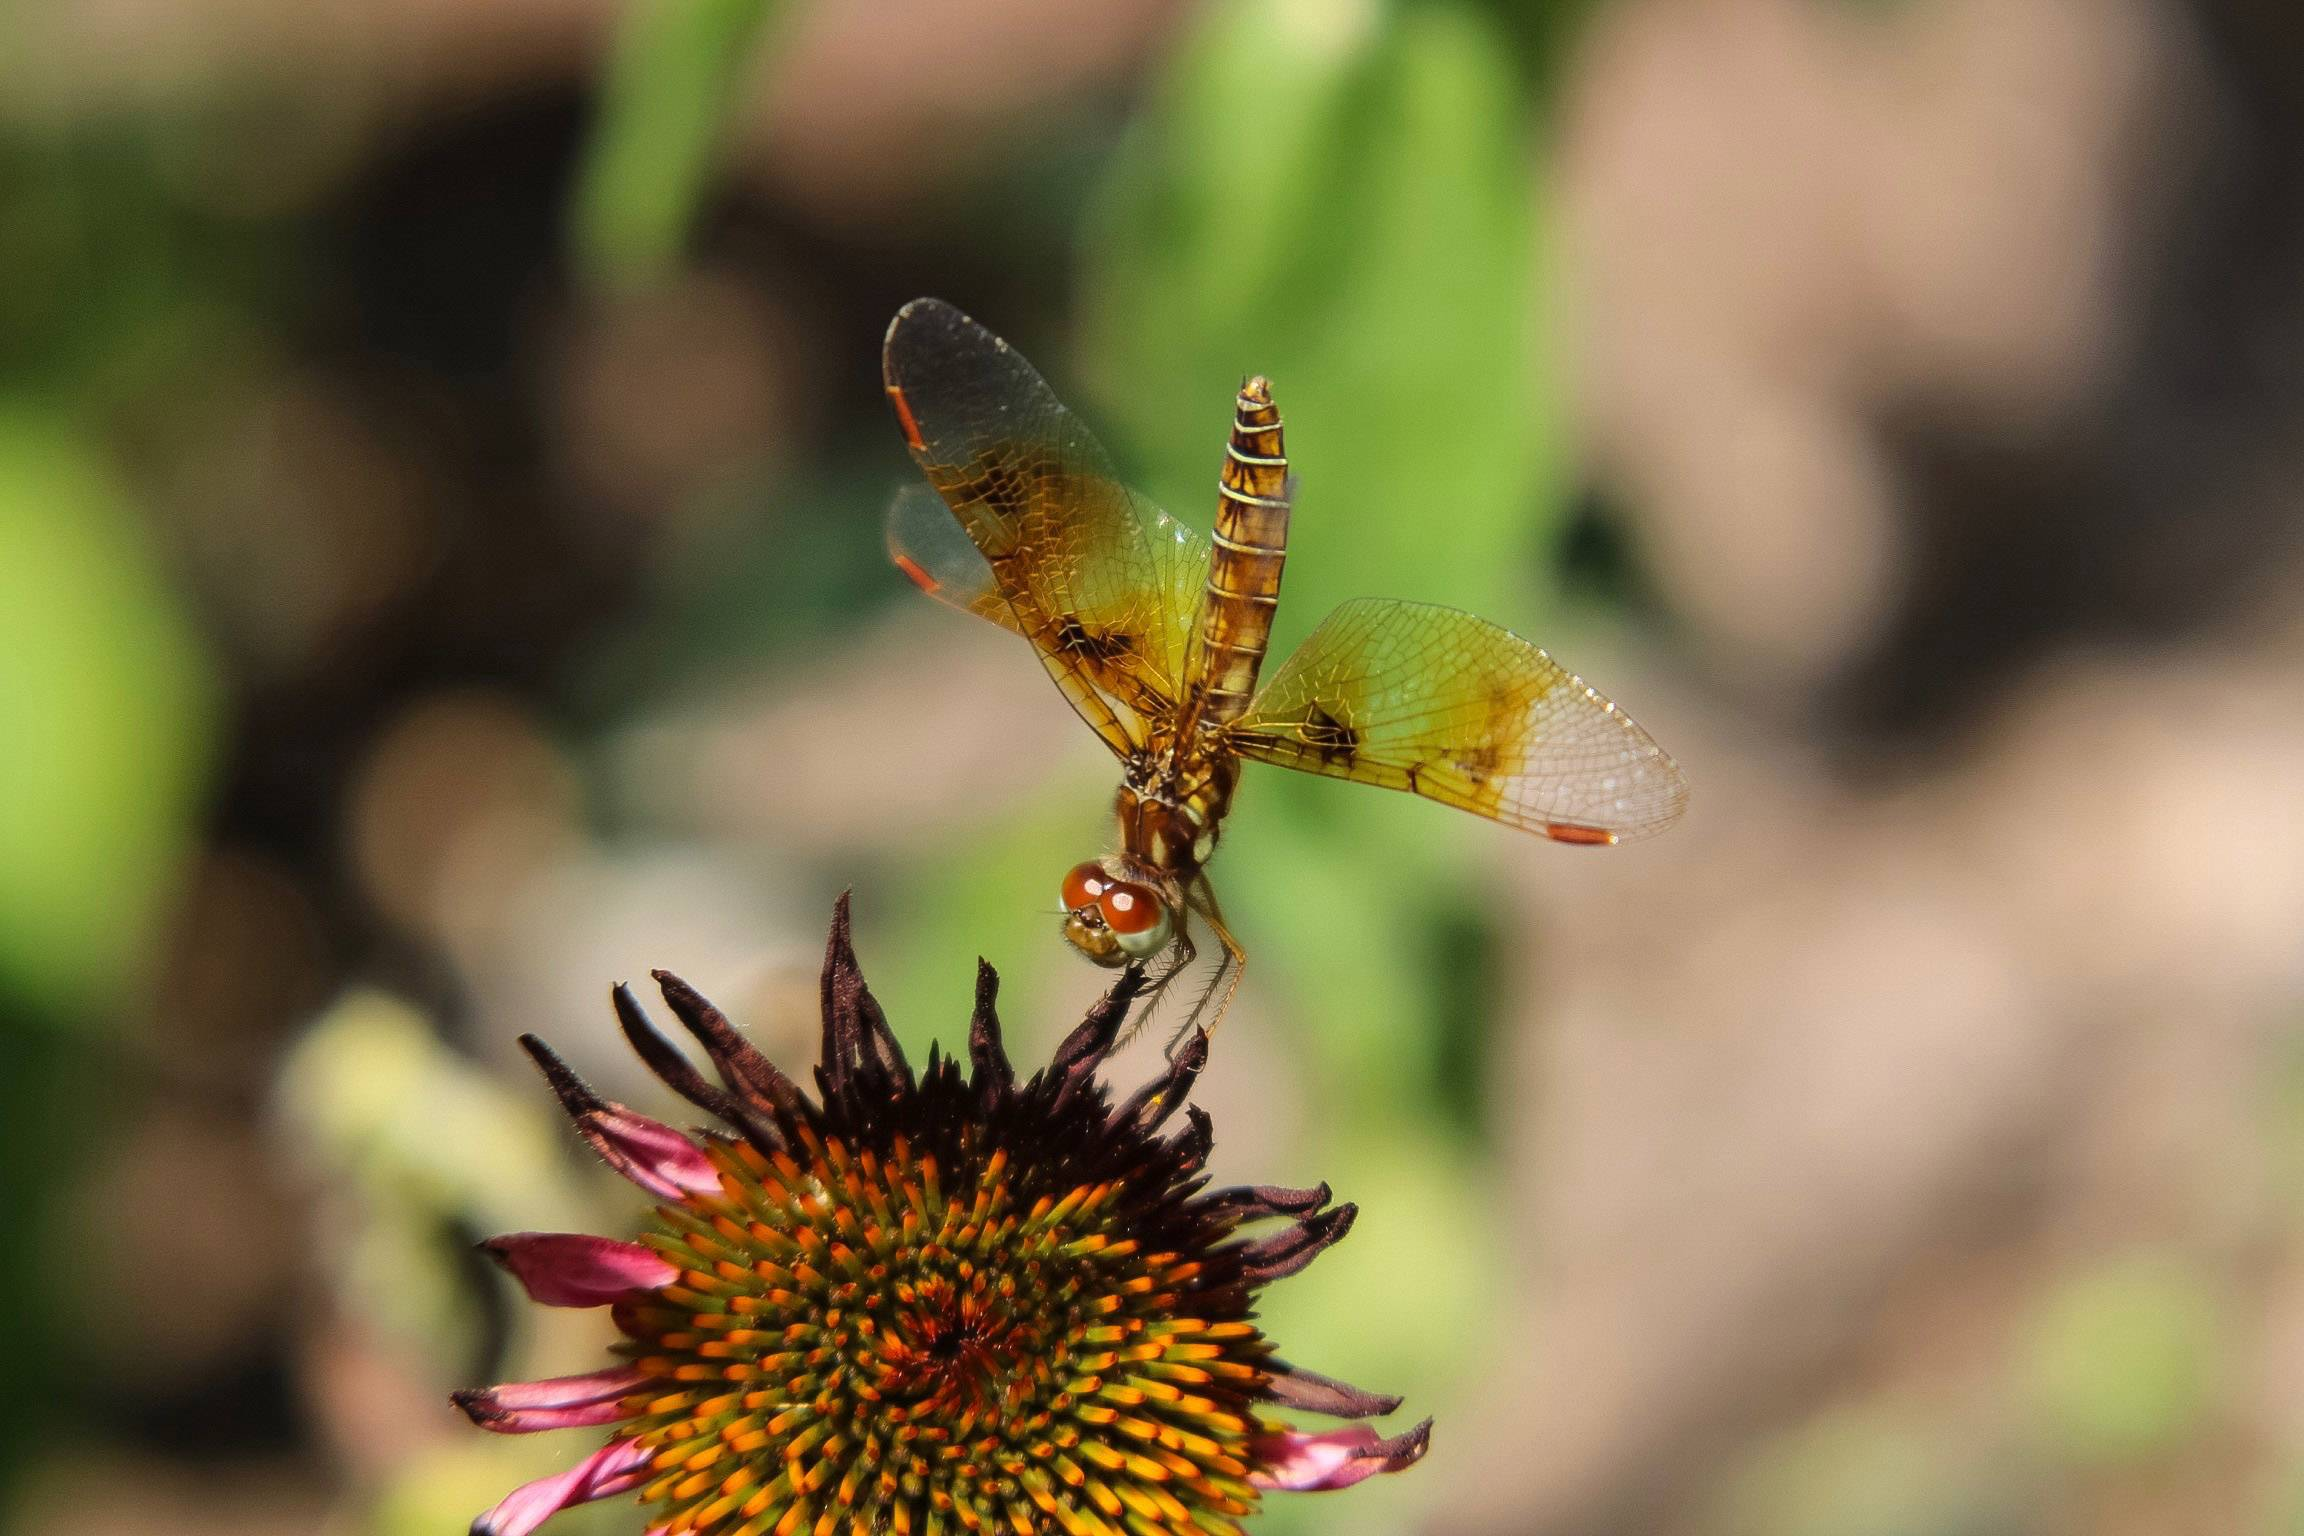 A Halloween pennant dragonfly hangs onto a purple coneflower. It gets their name because of the orange and black colors and the fact that they perch on plants and wave in the breeze like pennants.